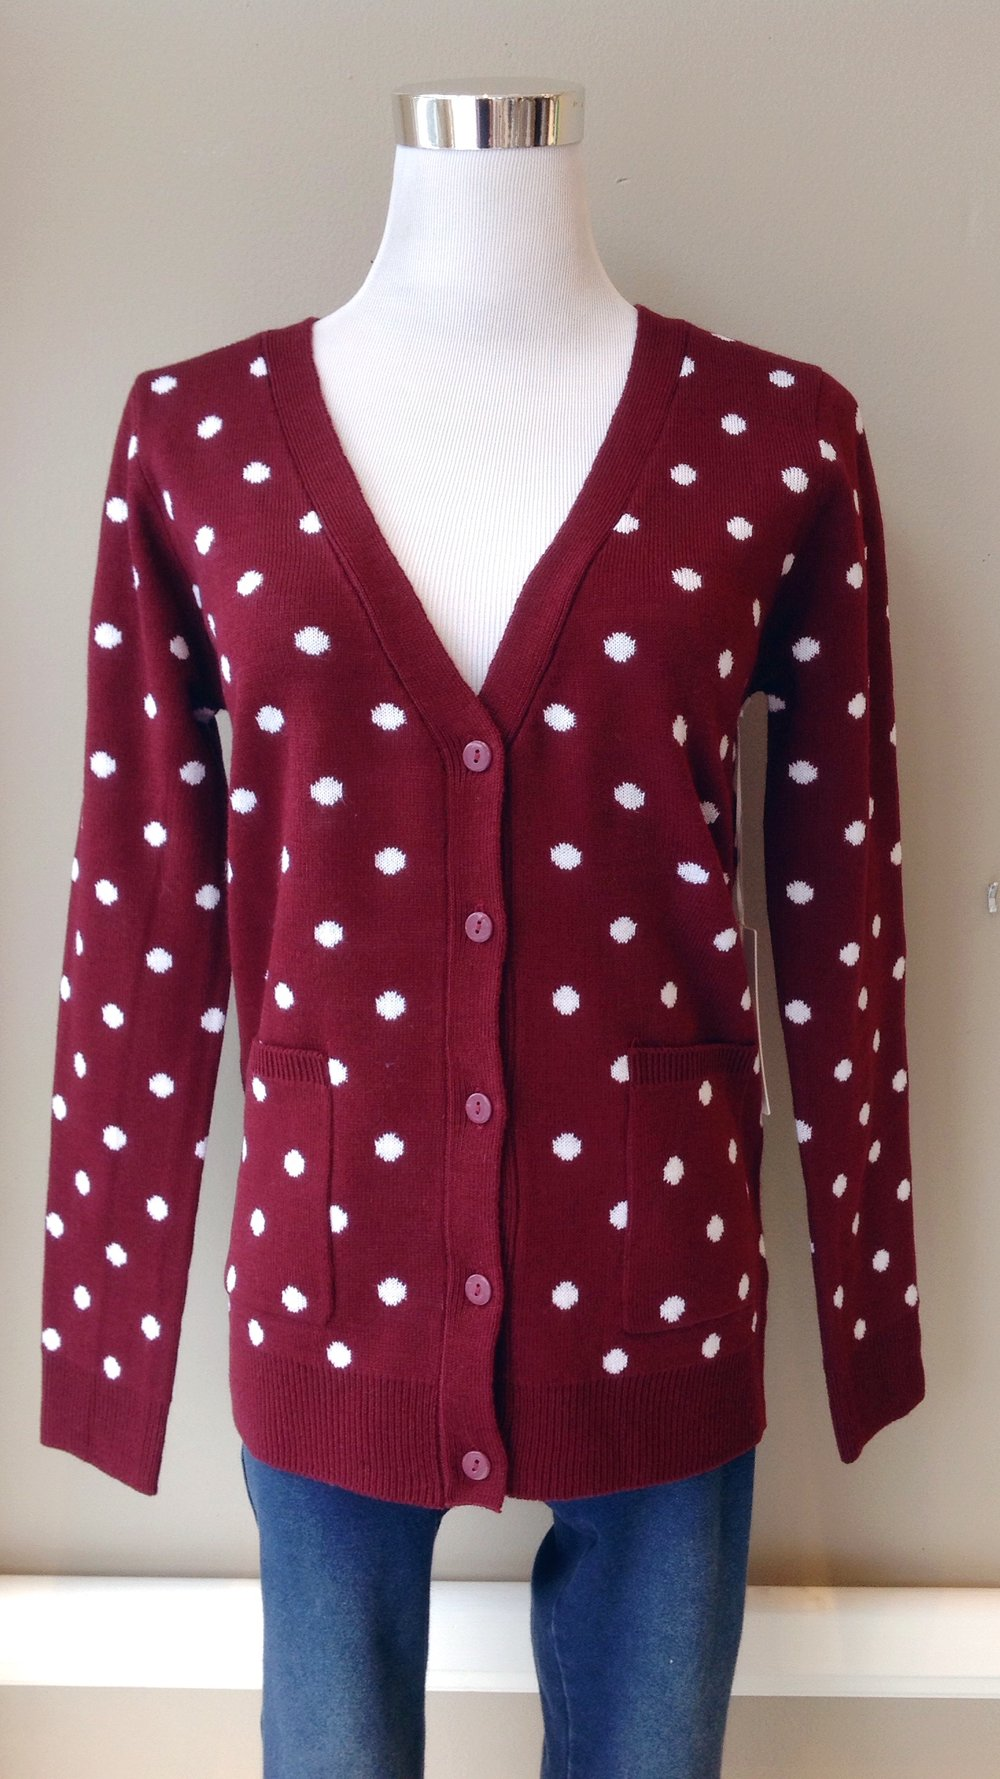 Burgundy polka dot cardigan with side pockets, $35